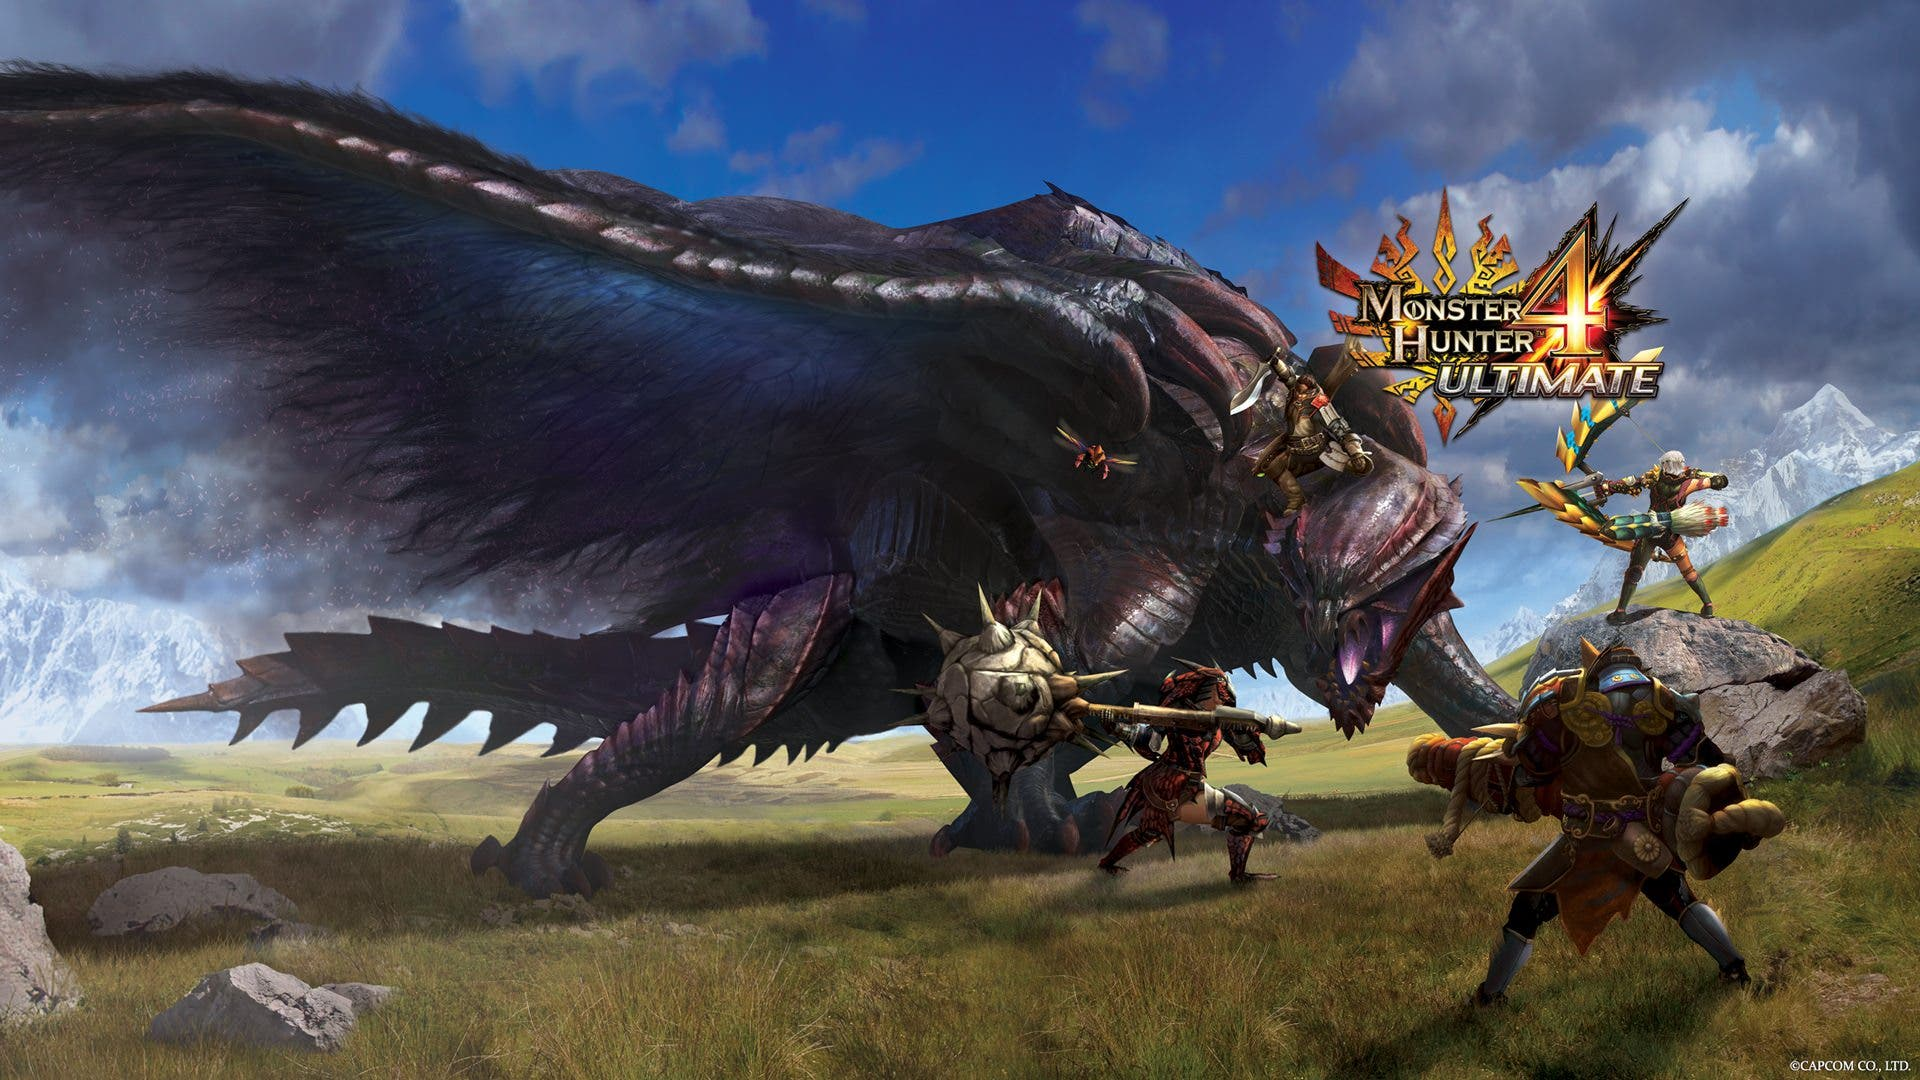 Capcom se luce con el modo multijugador de 'Monster Hunter 4 Ultimate' en inglés